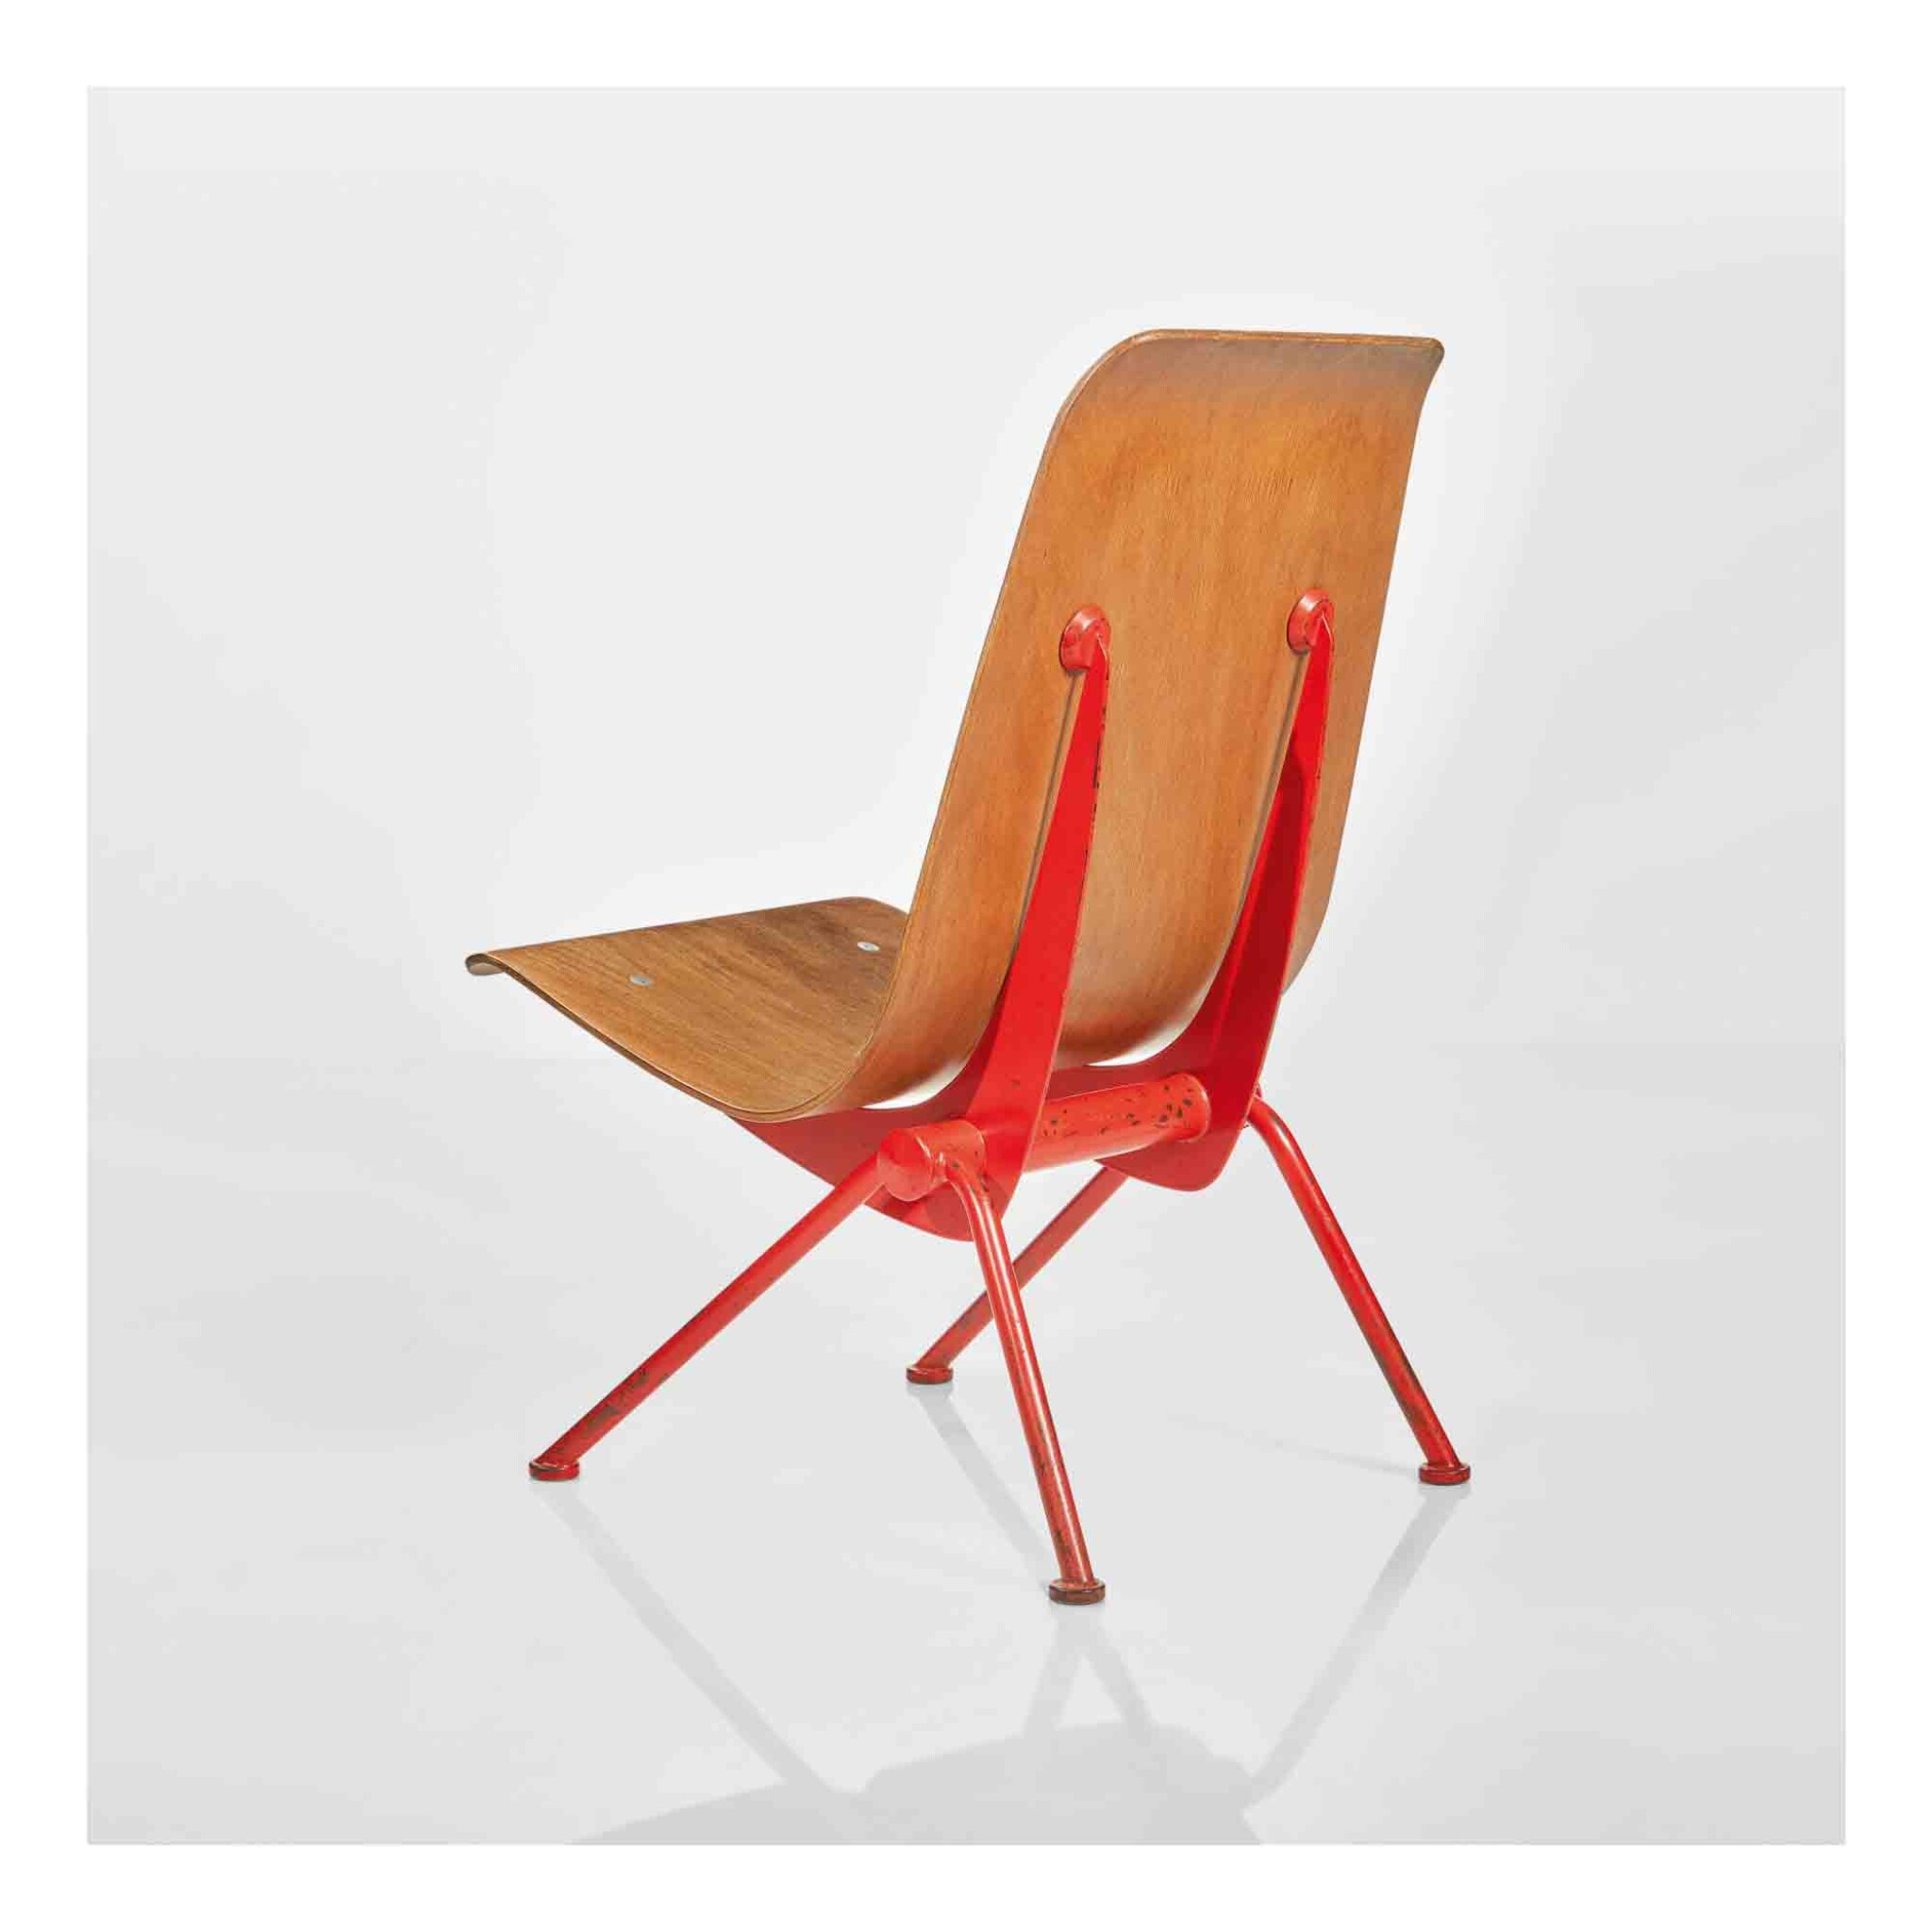 """View 1 of Lot 359. """"Antony"""" Chair, Model No. 356."""